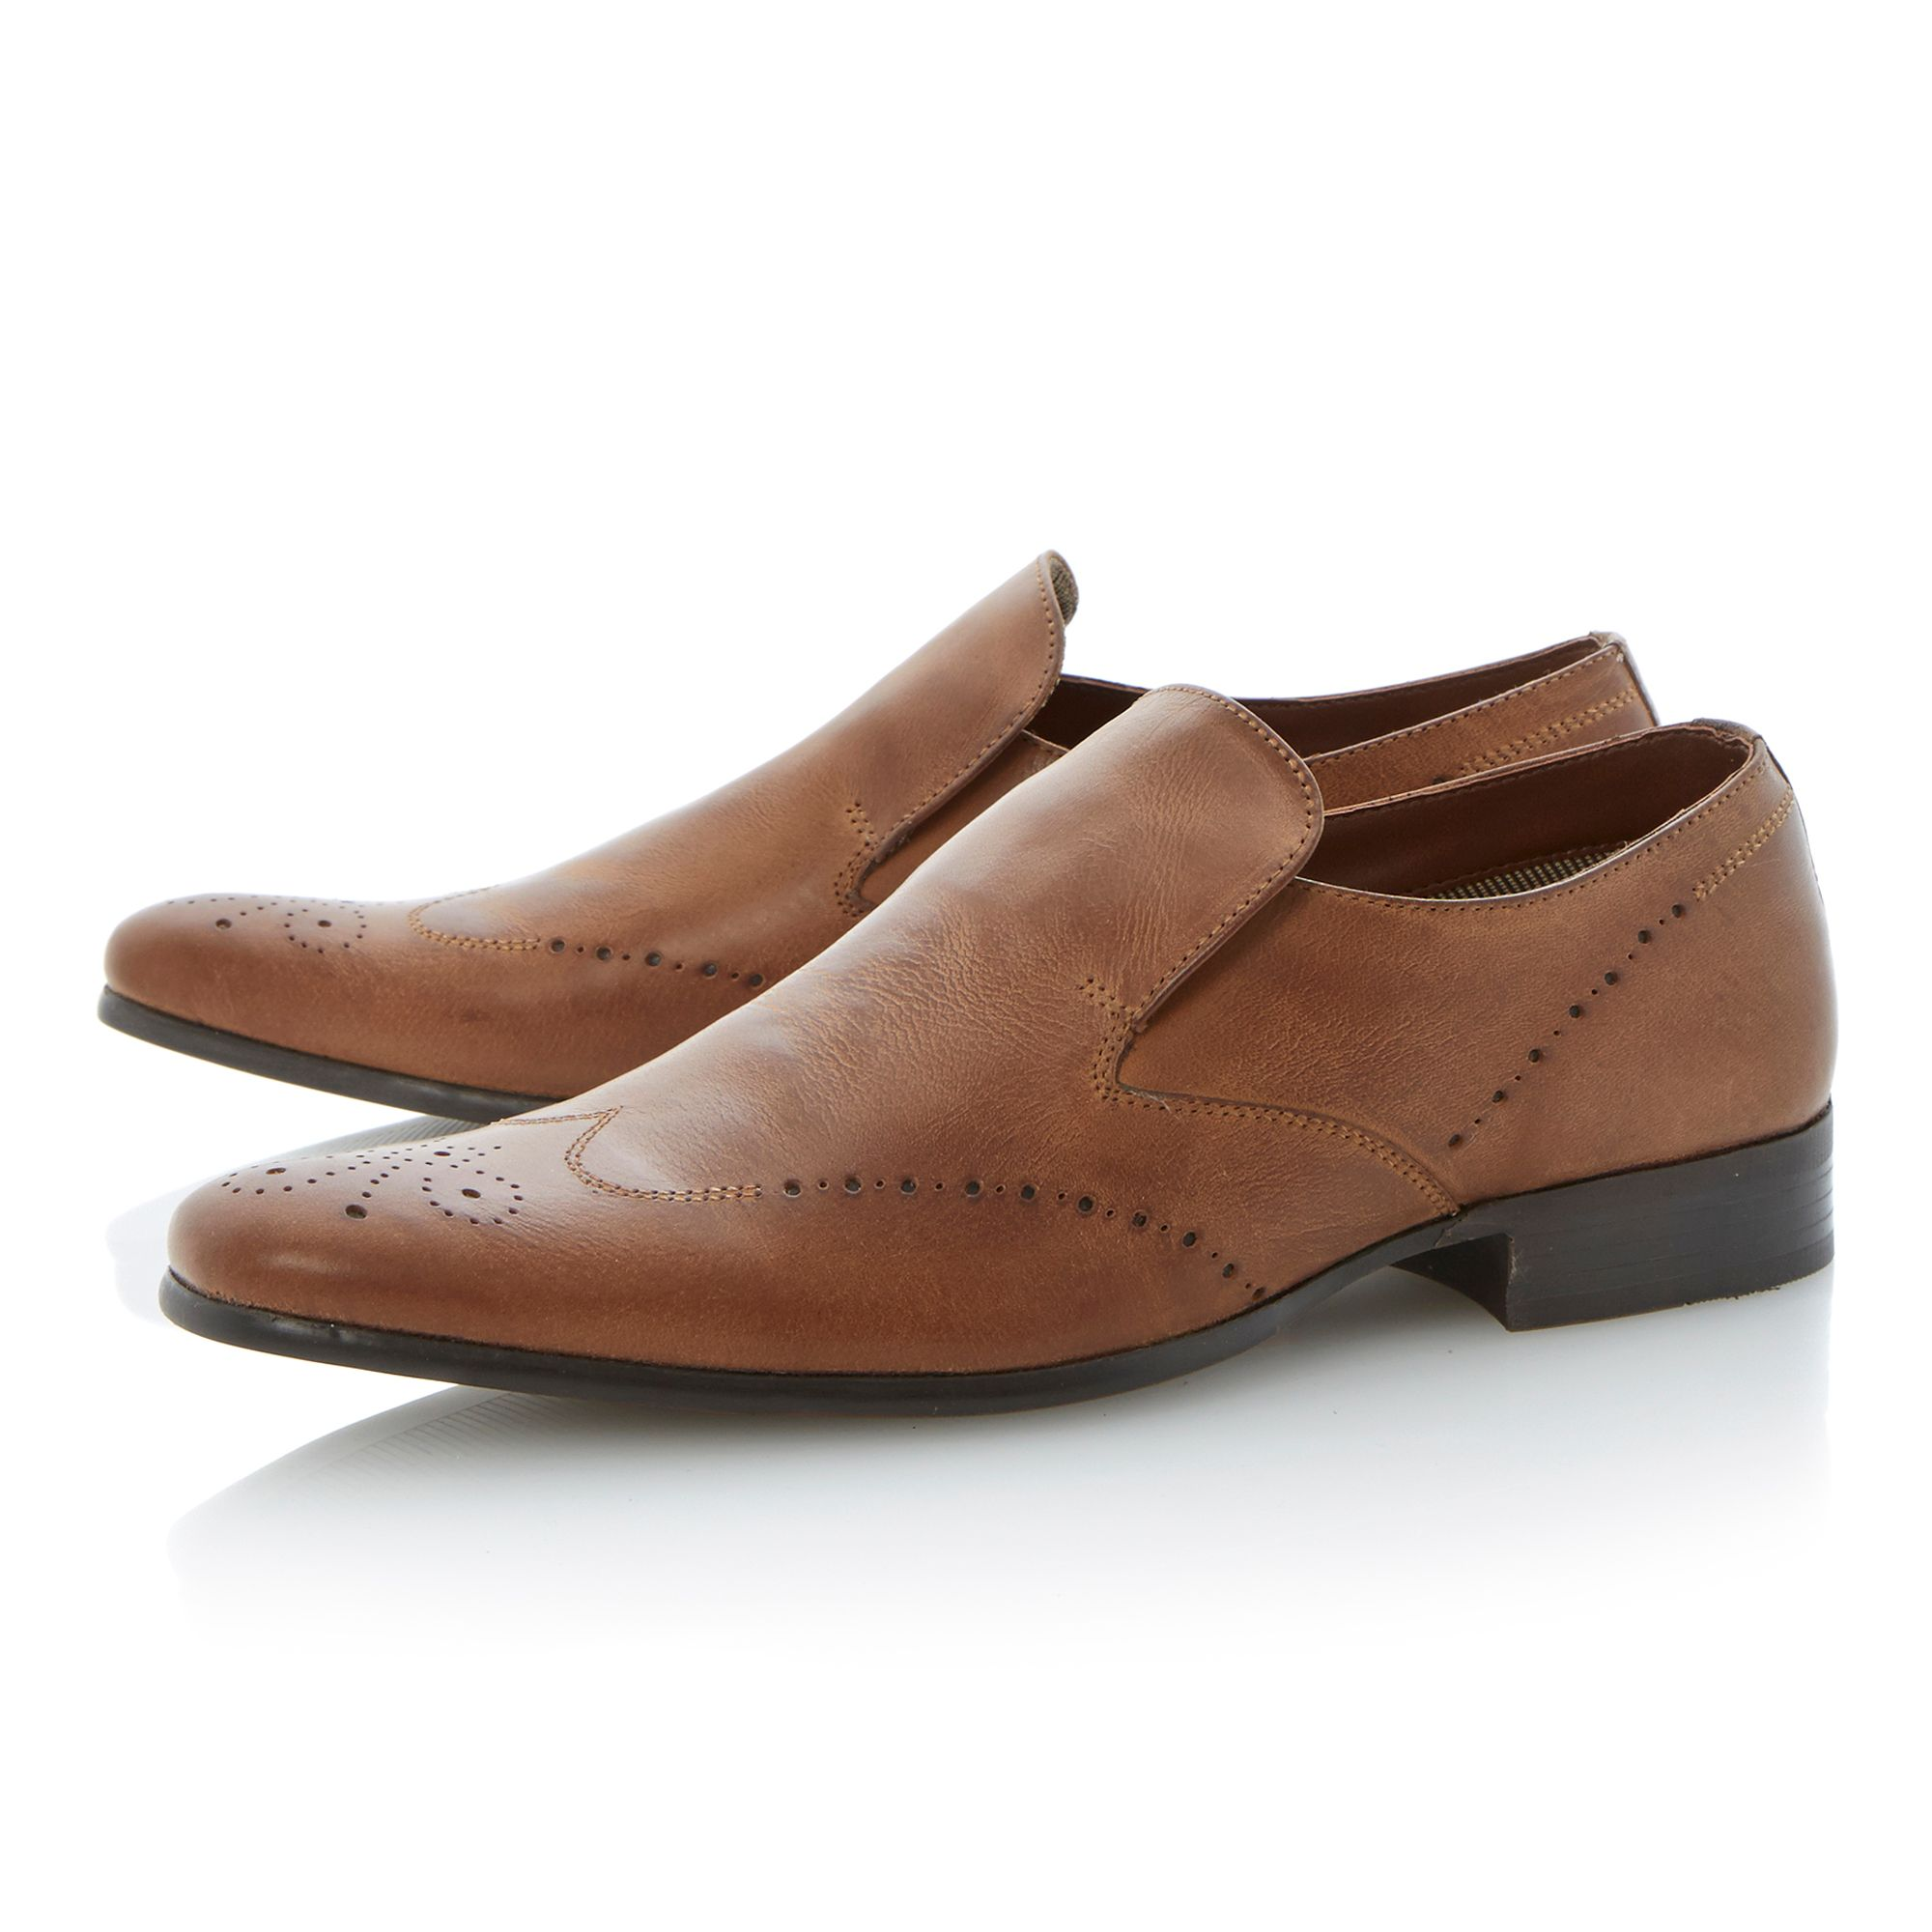 Ayre elasticated brogue detail loafers